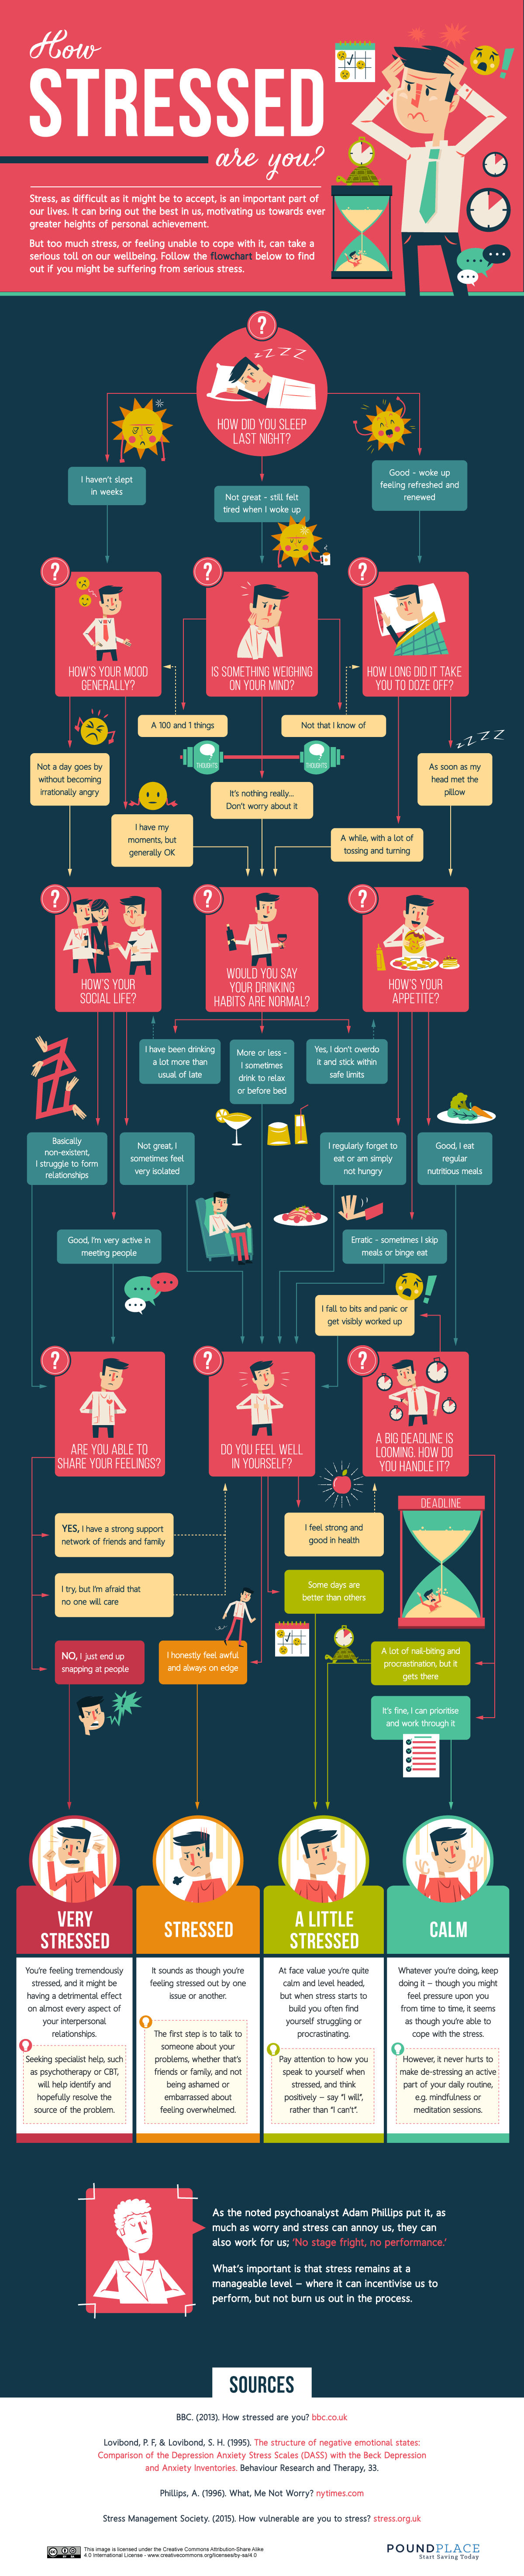 stress ay work infographic